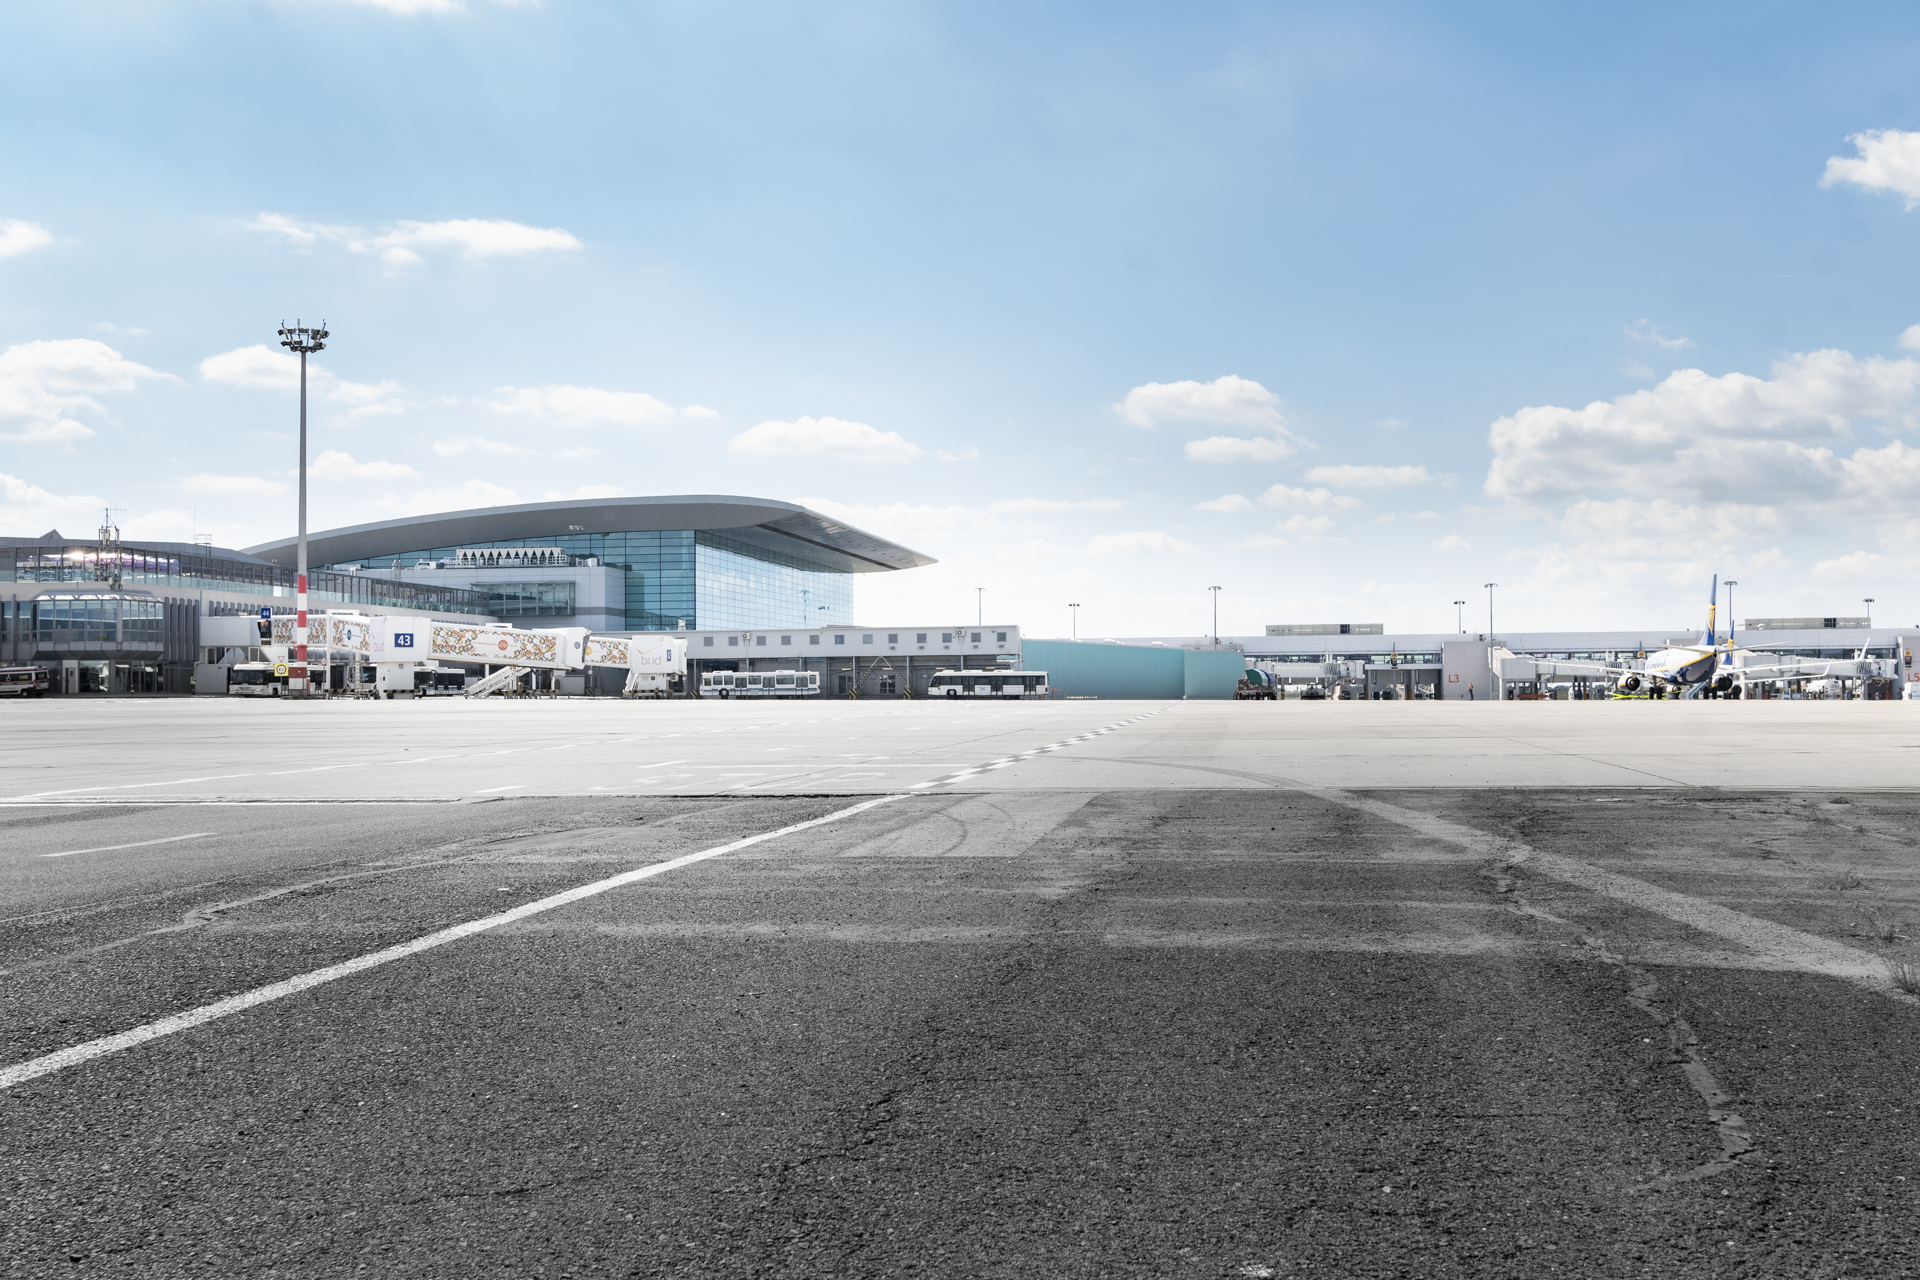 Budapest Airport recognizes green airport partners